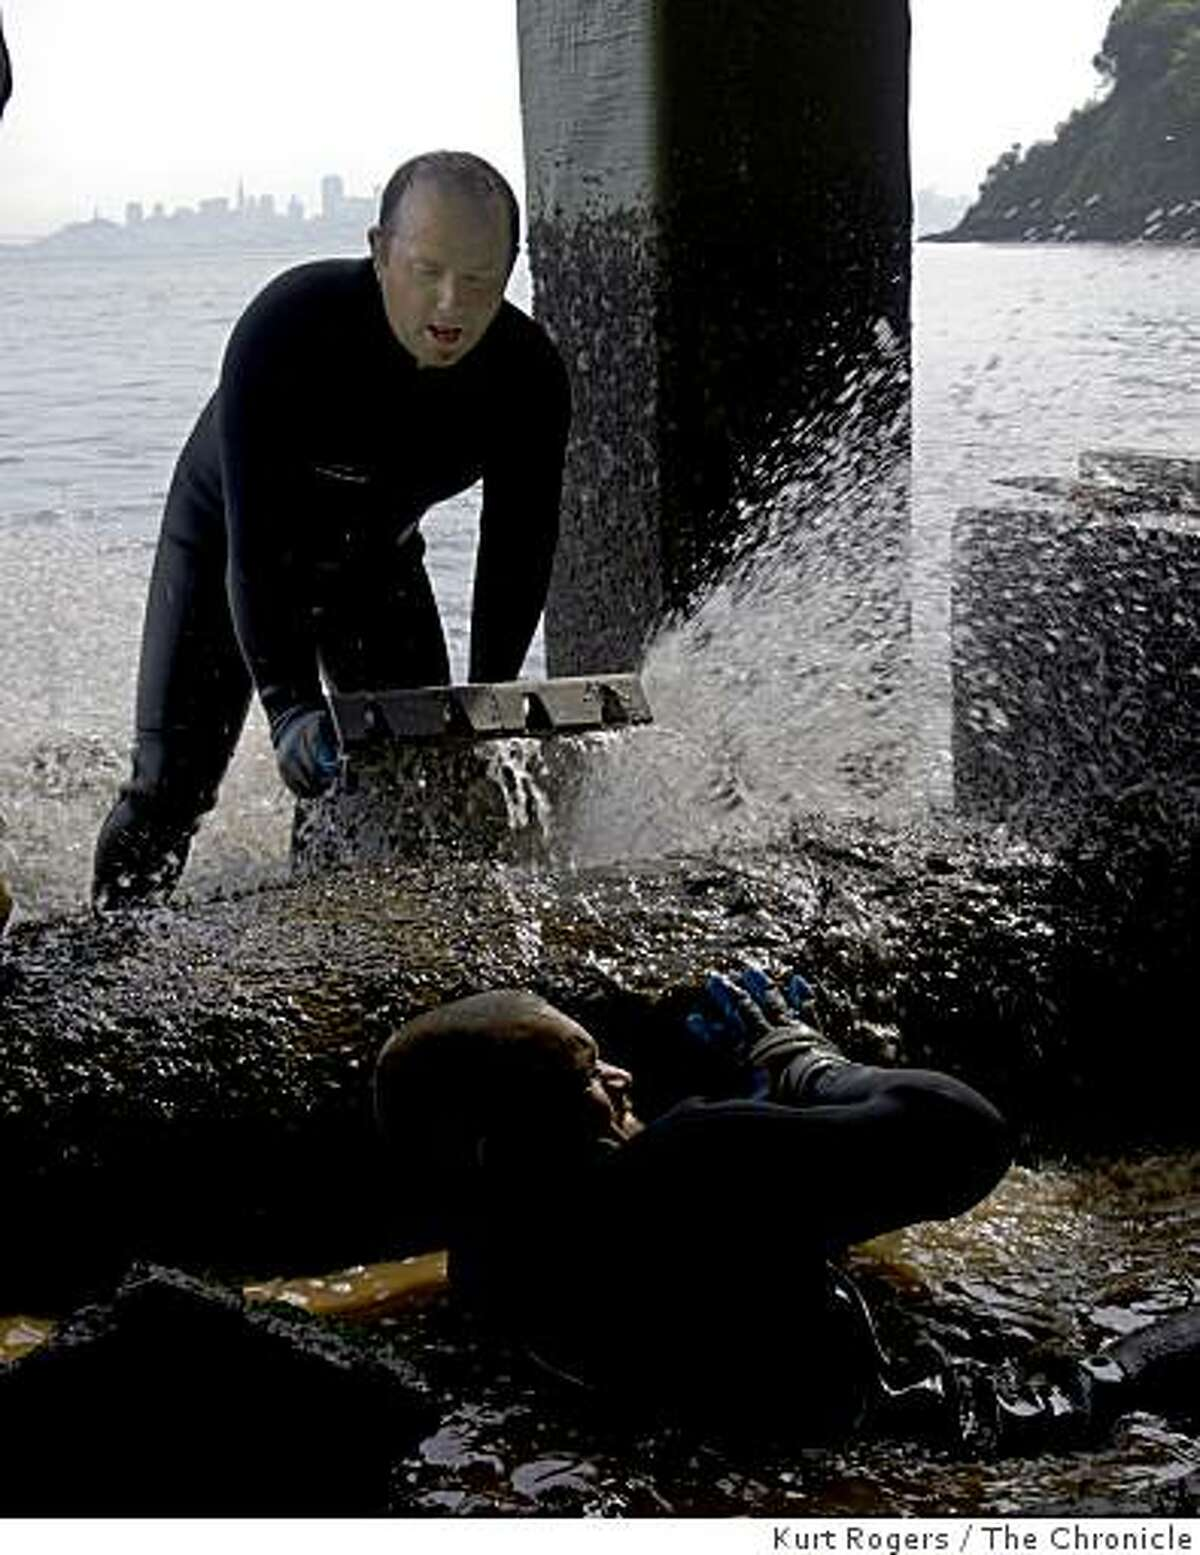 Tim Gulley (top) and Dallas Leighton, who work for Maggiora-Gailotti, try to fit a collar around the pipe thathas leaked thousands of gallons of treated sewage water into the bay at the Sausalito-Marin City Sanitary District Fort Baker treatment plant on Feb. 18, 2009 in Sausalito, Calif.